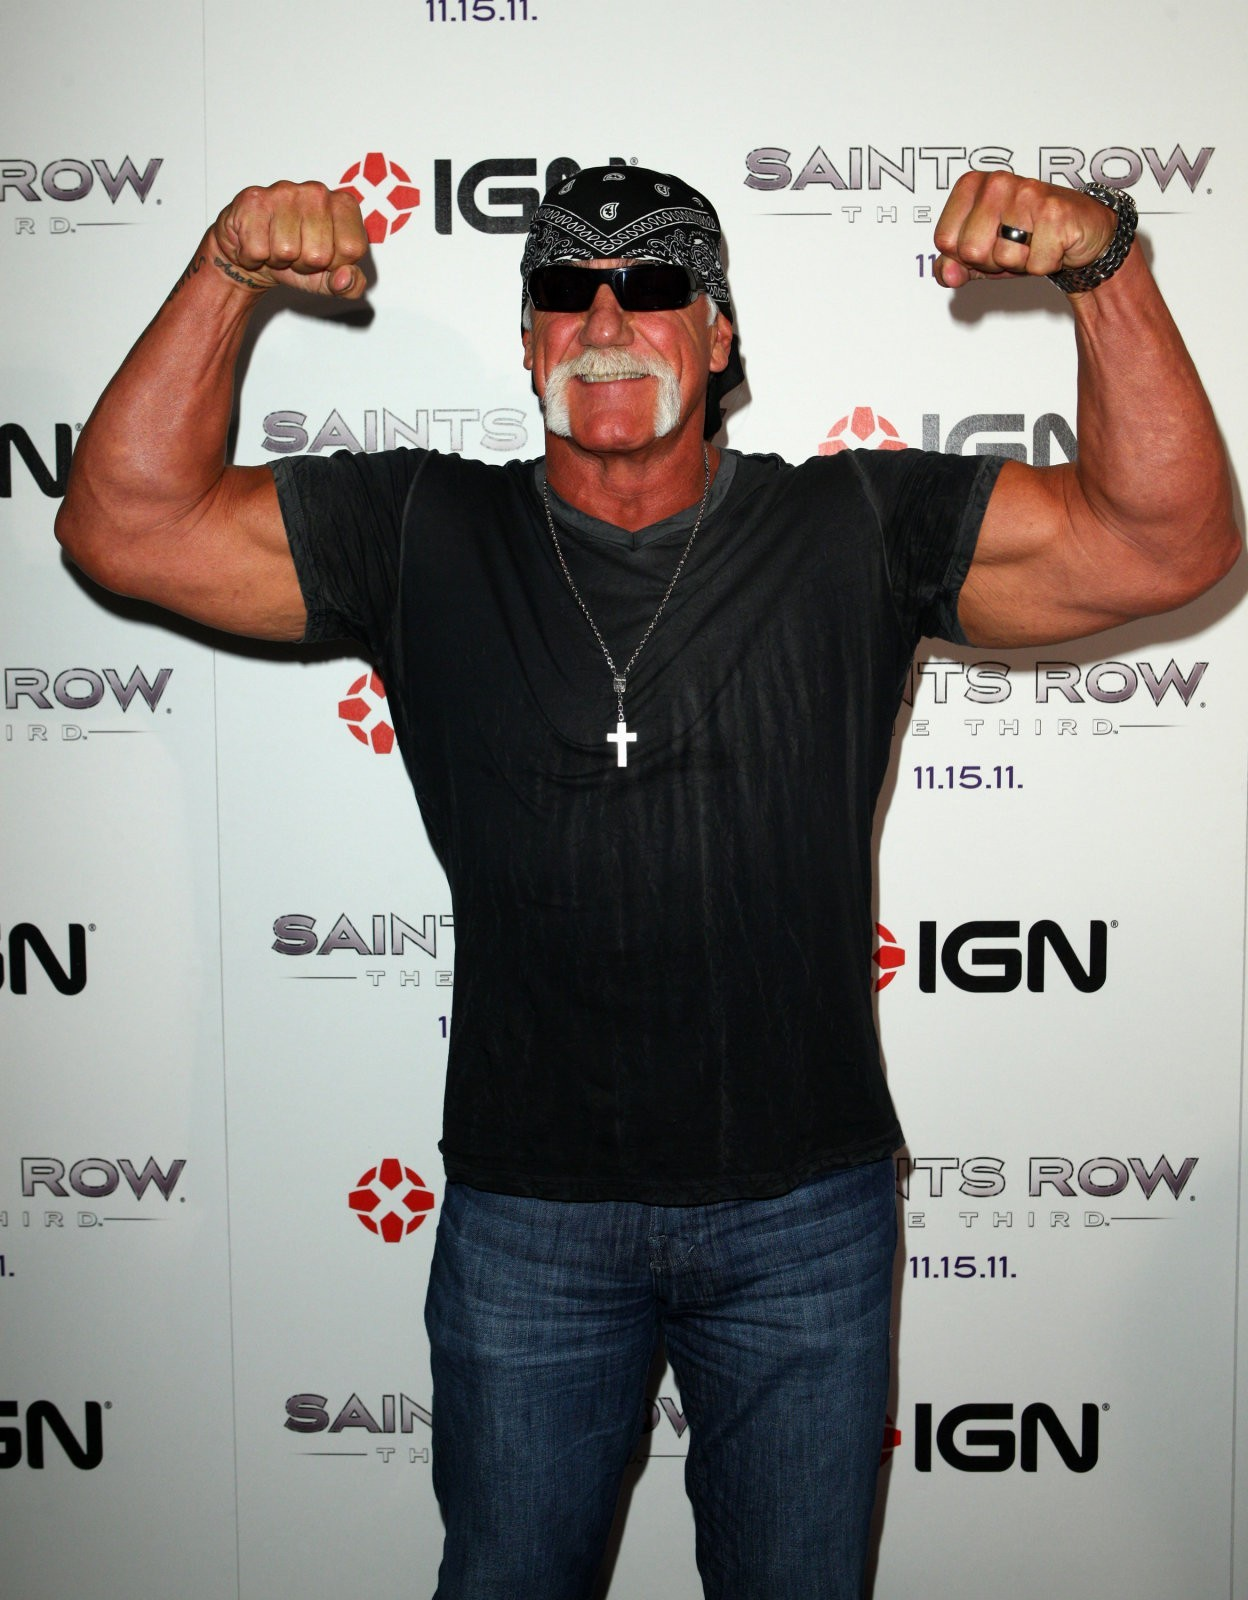 Hulk Hogan, IGN Party, Saints Row The Third 07212011